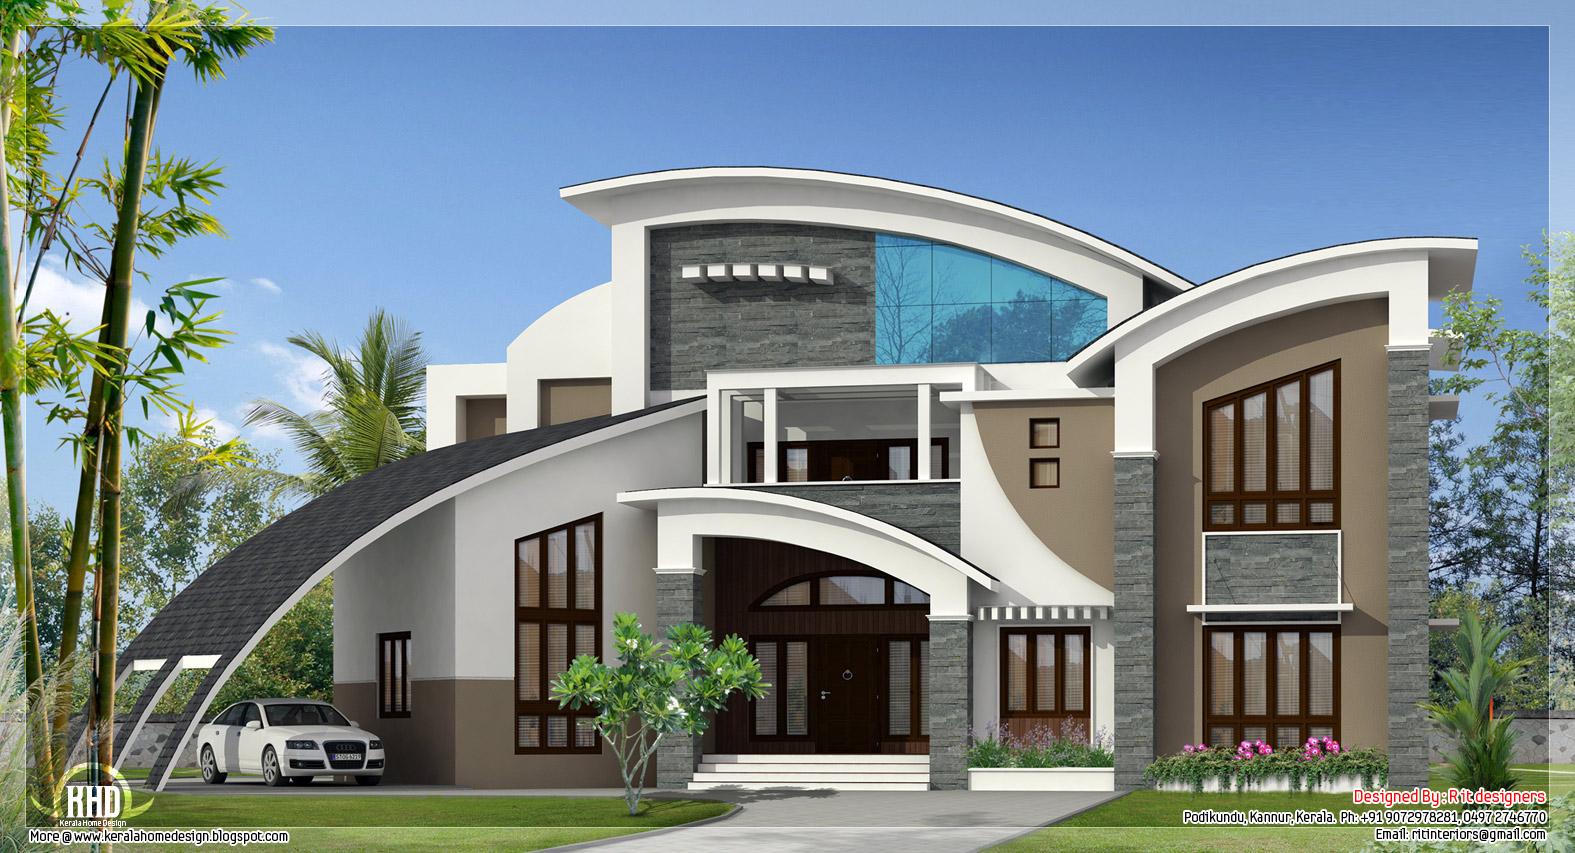 A Unique Super Luxury Kerala Villa Home Design